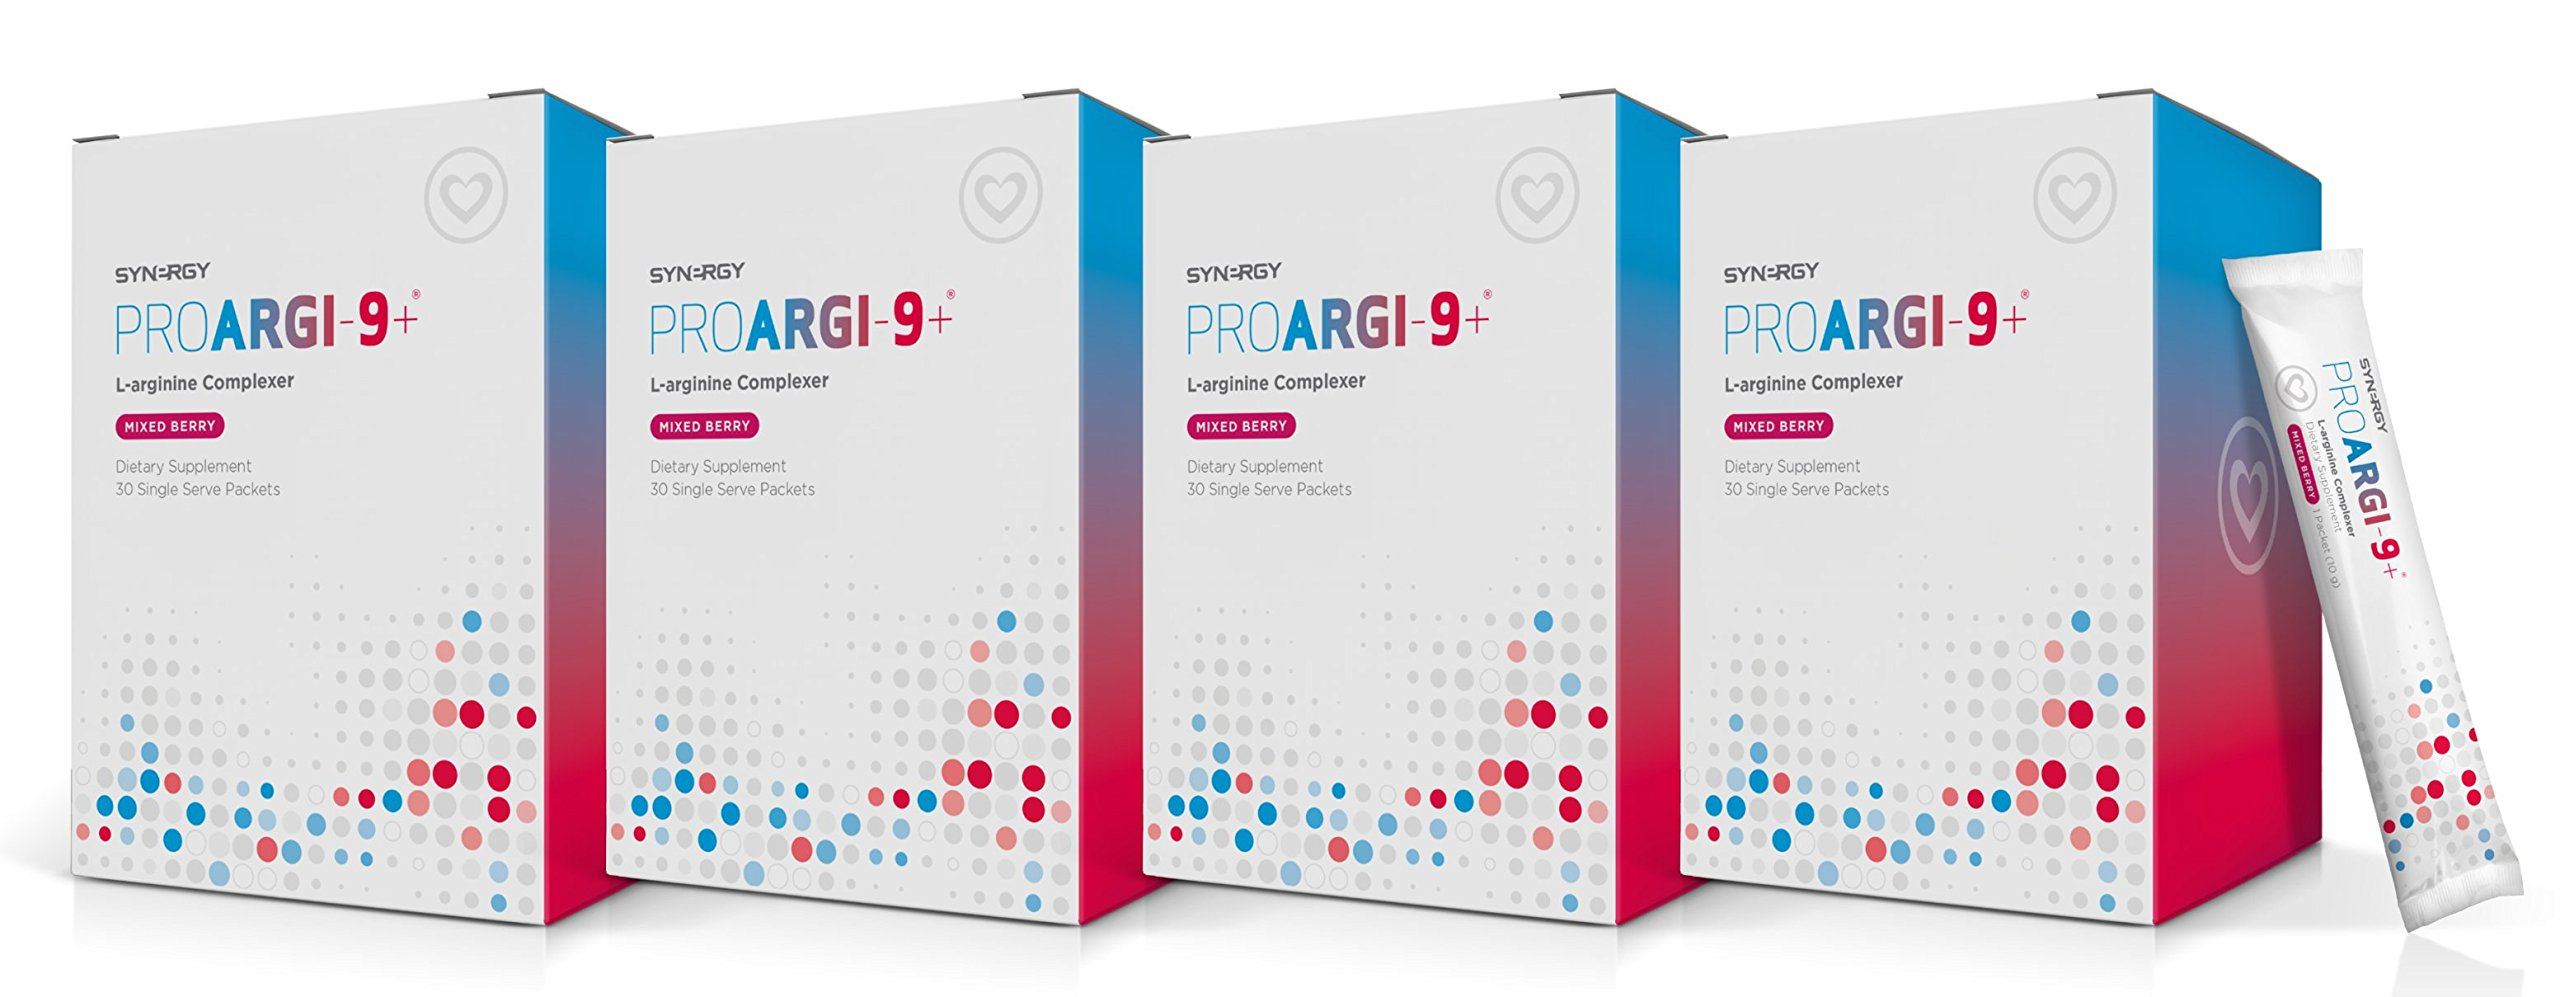 ProArgi 9 Plus Mixed Berry Single Serve (4) Boxes Pack Support Heart Health by Synergy (11.1 oz / 315g) by Unknown